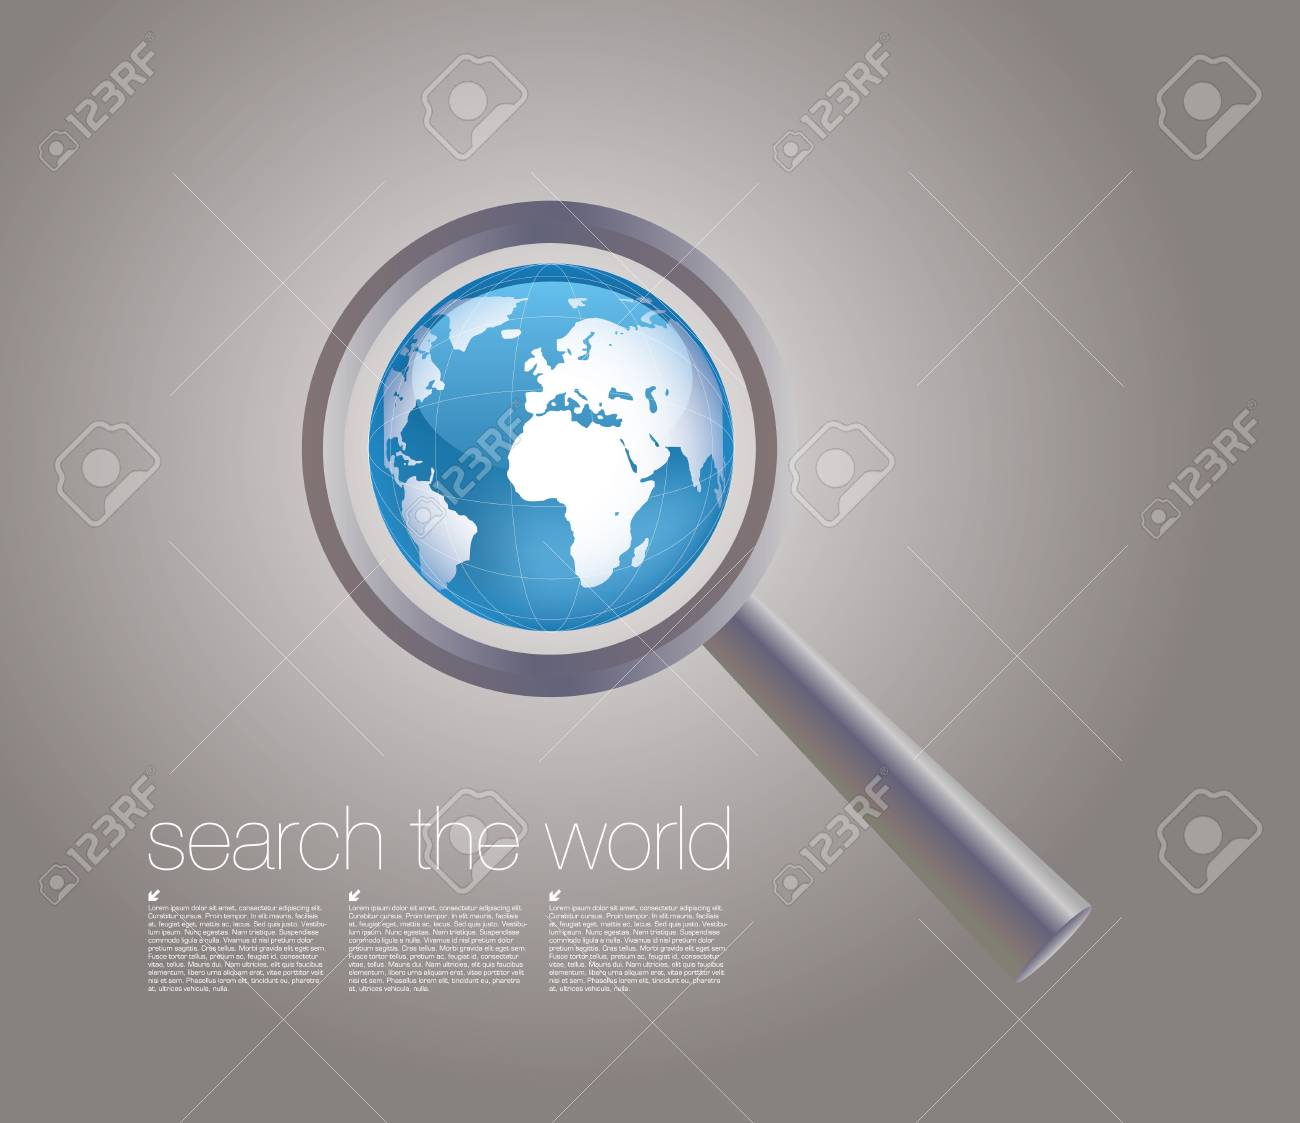 searching the world background Stock Vector - 17240650